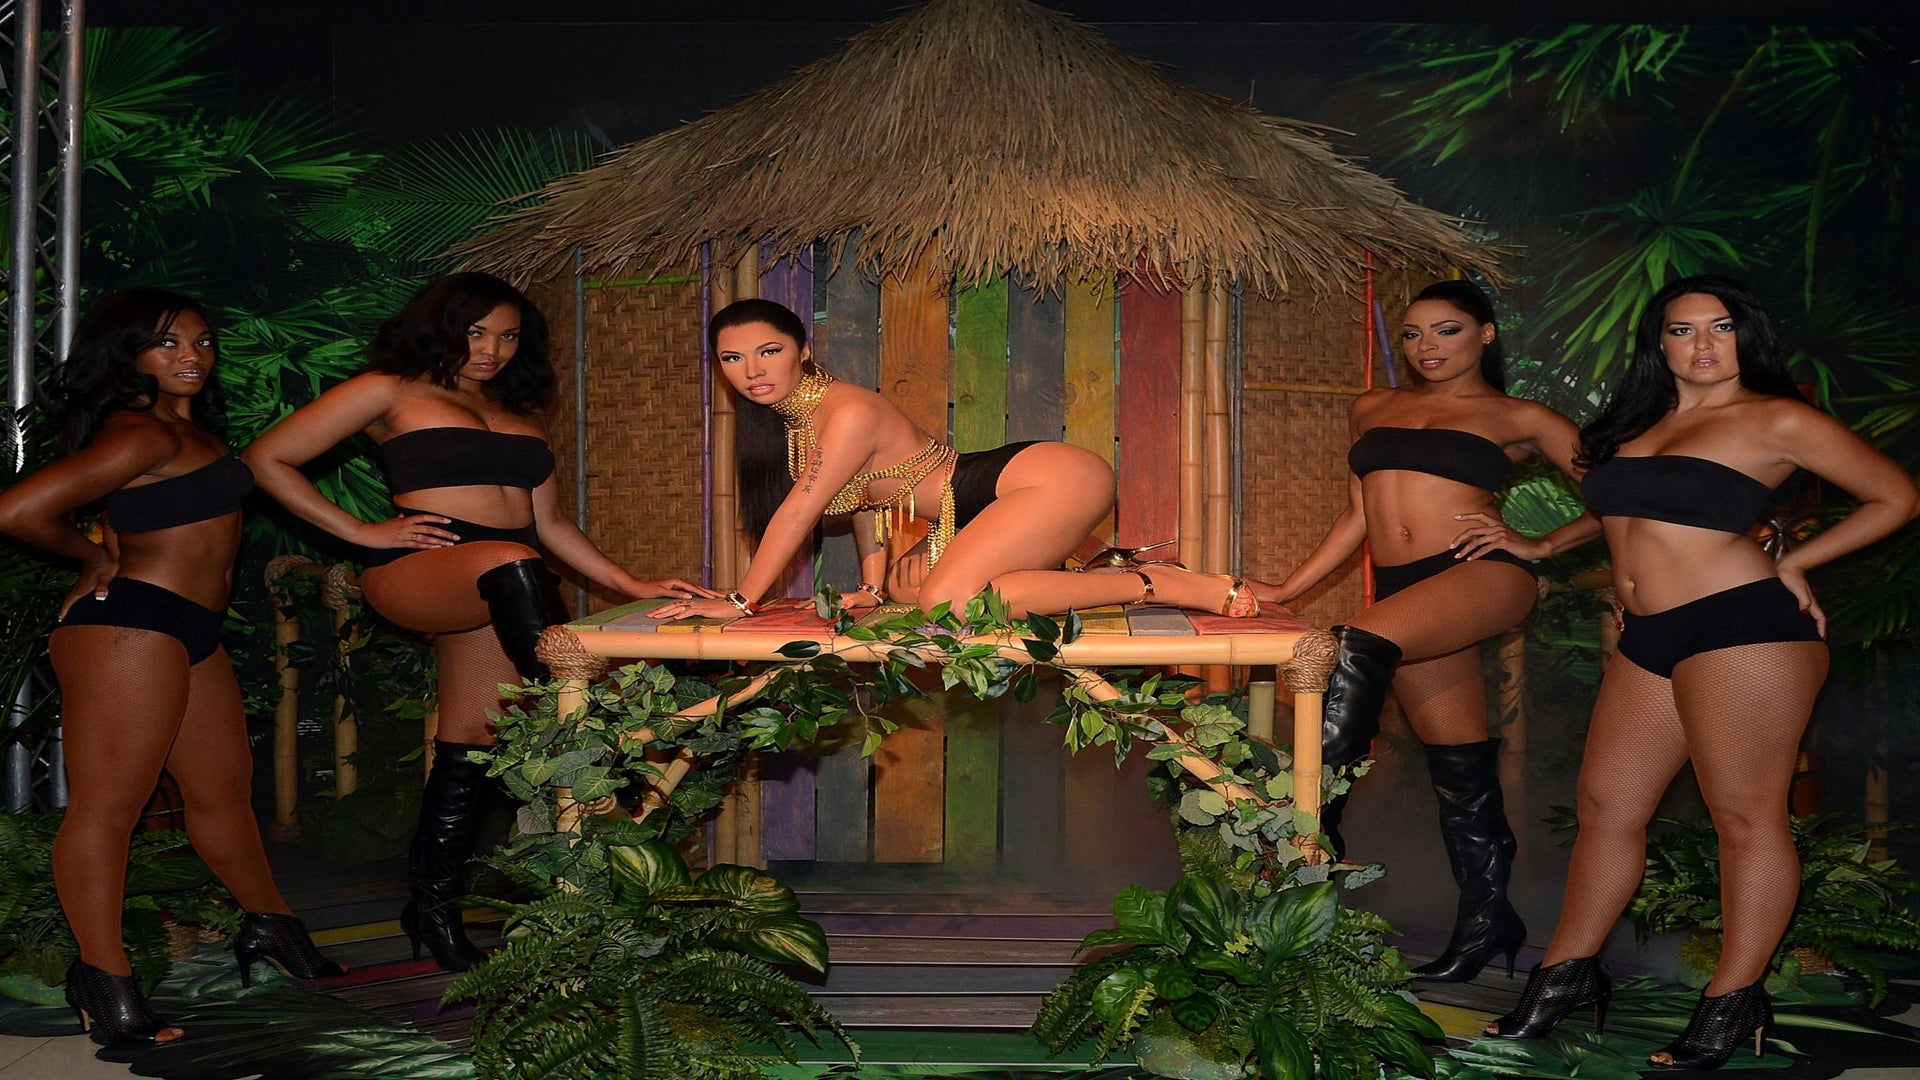 Nicki Minaj's Wax Figure Is Getting Some Inappropriate Attention